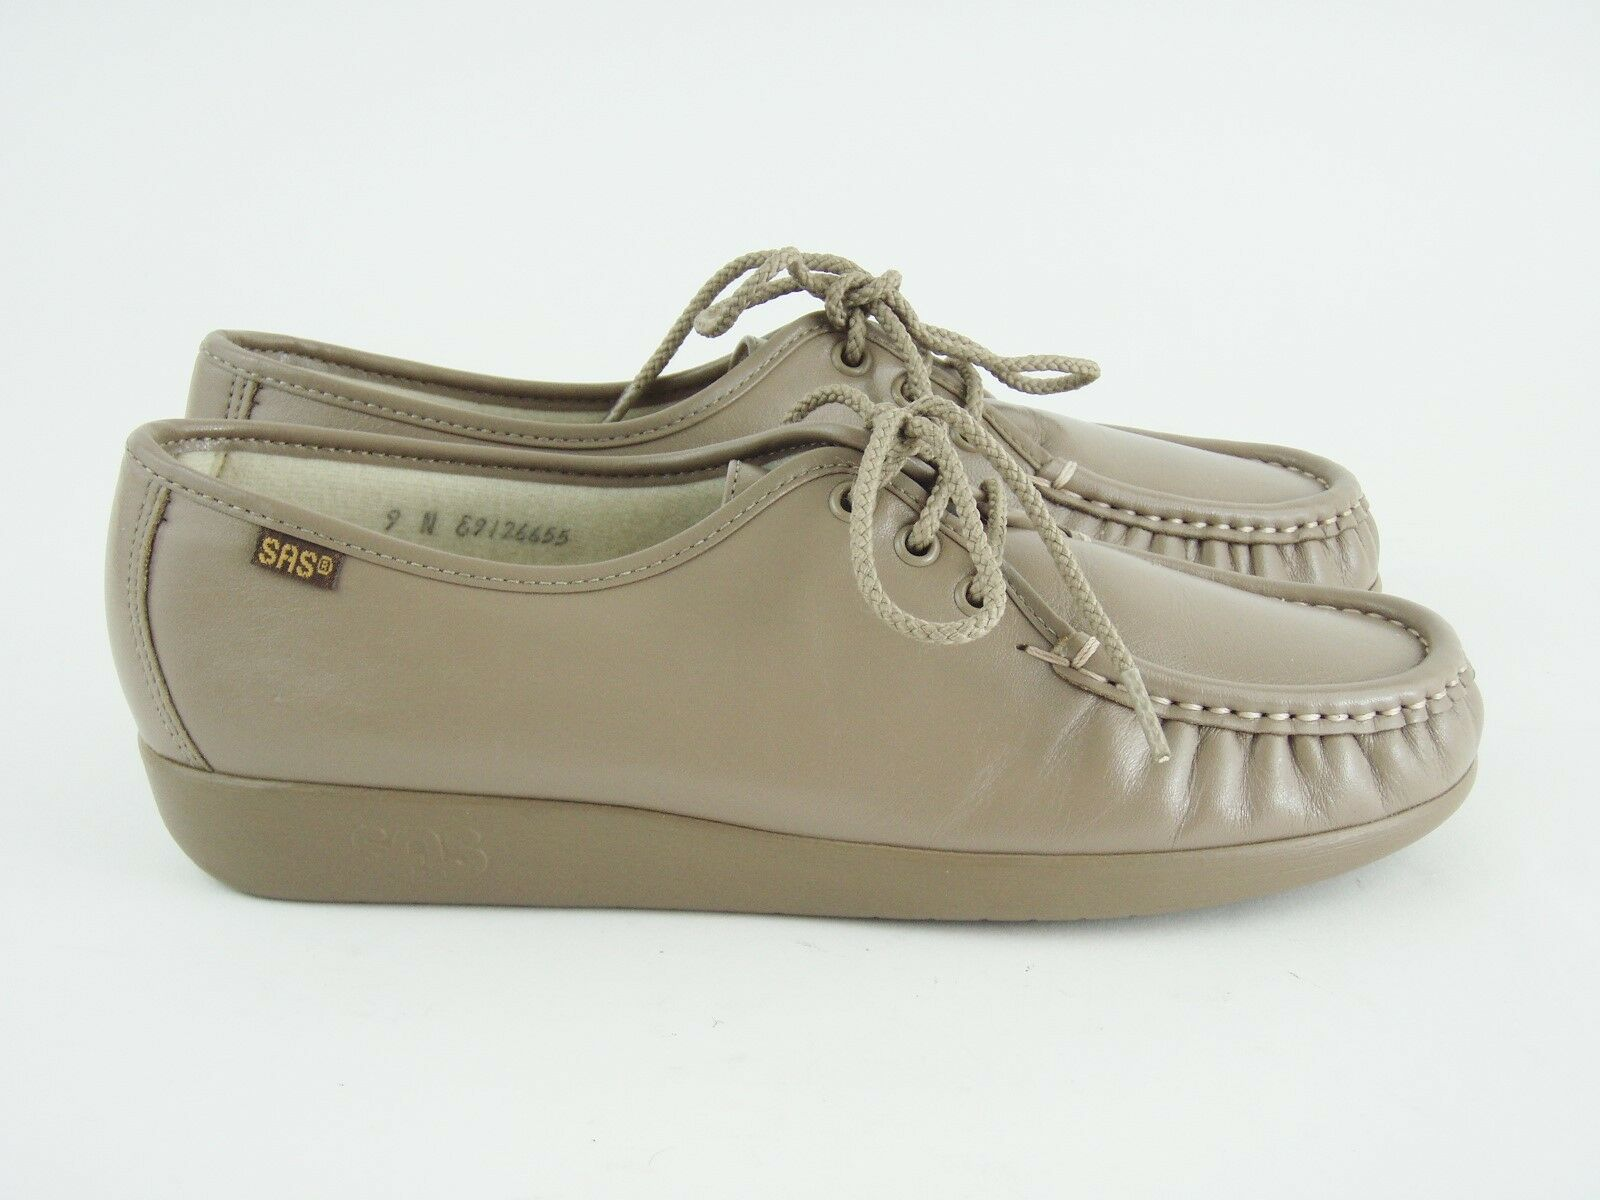 MINT SAS Mocha  Siesta    Leather Lace Up Oxfords shoes - Size 9 N - IN BOX  - EUC 26f42f